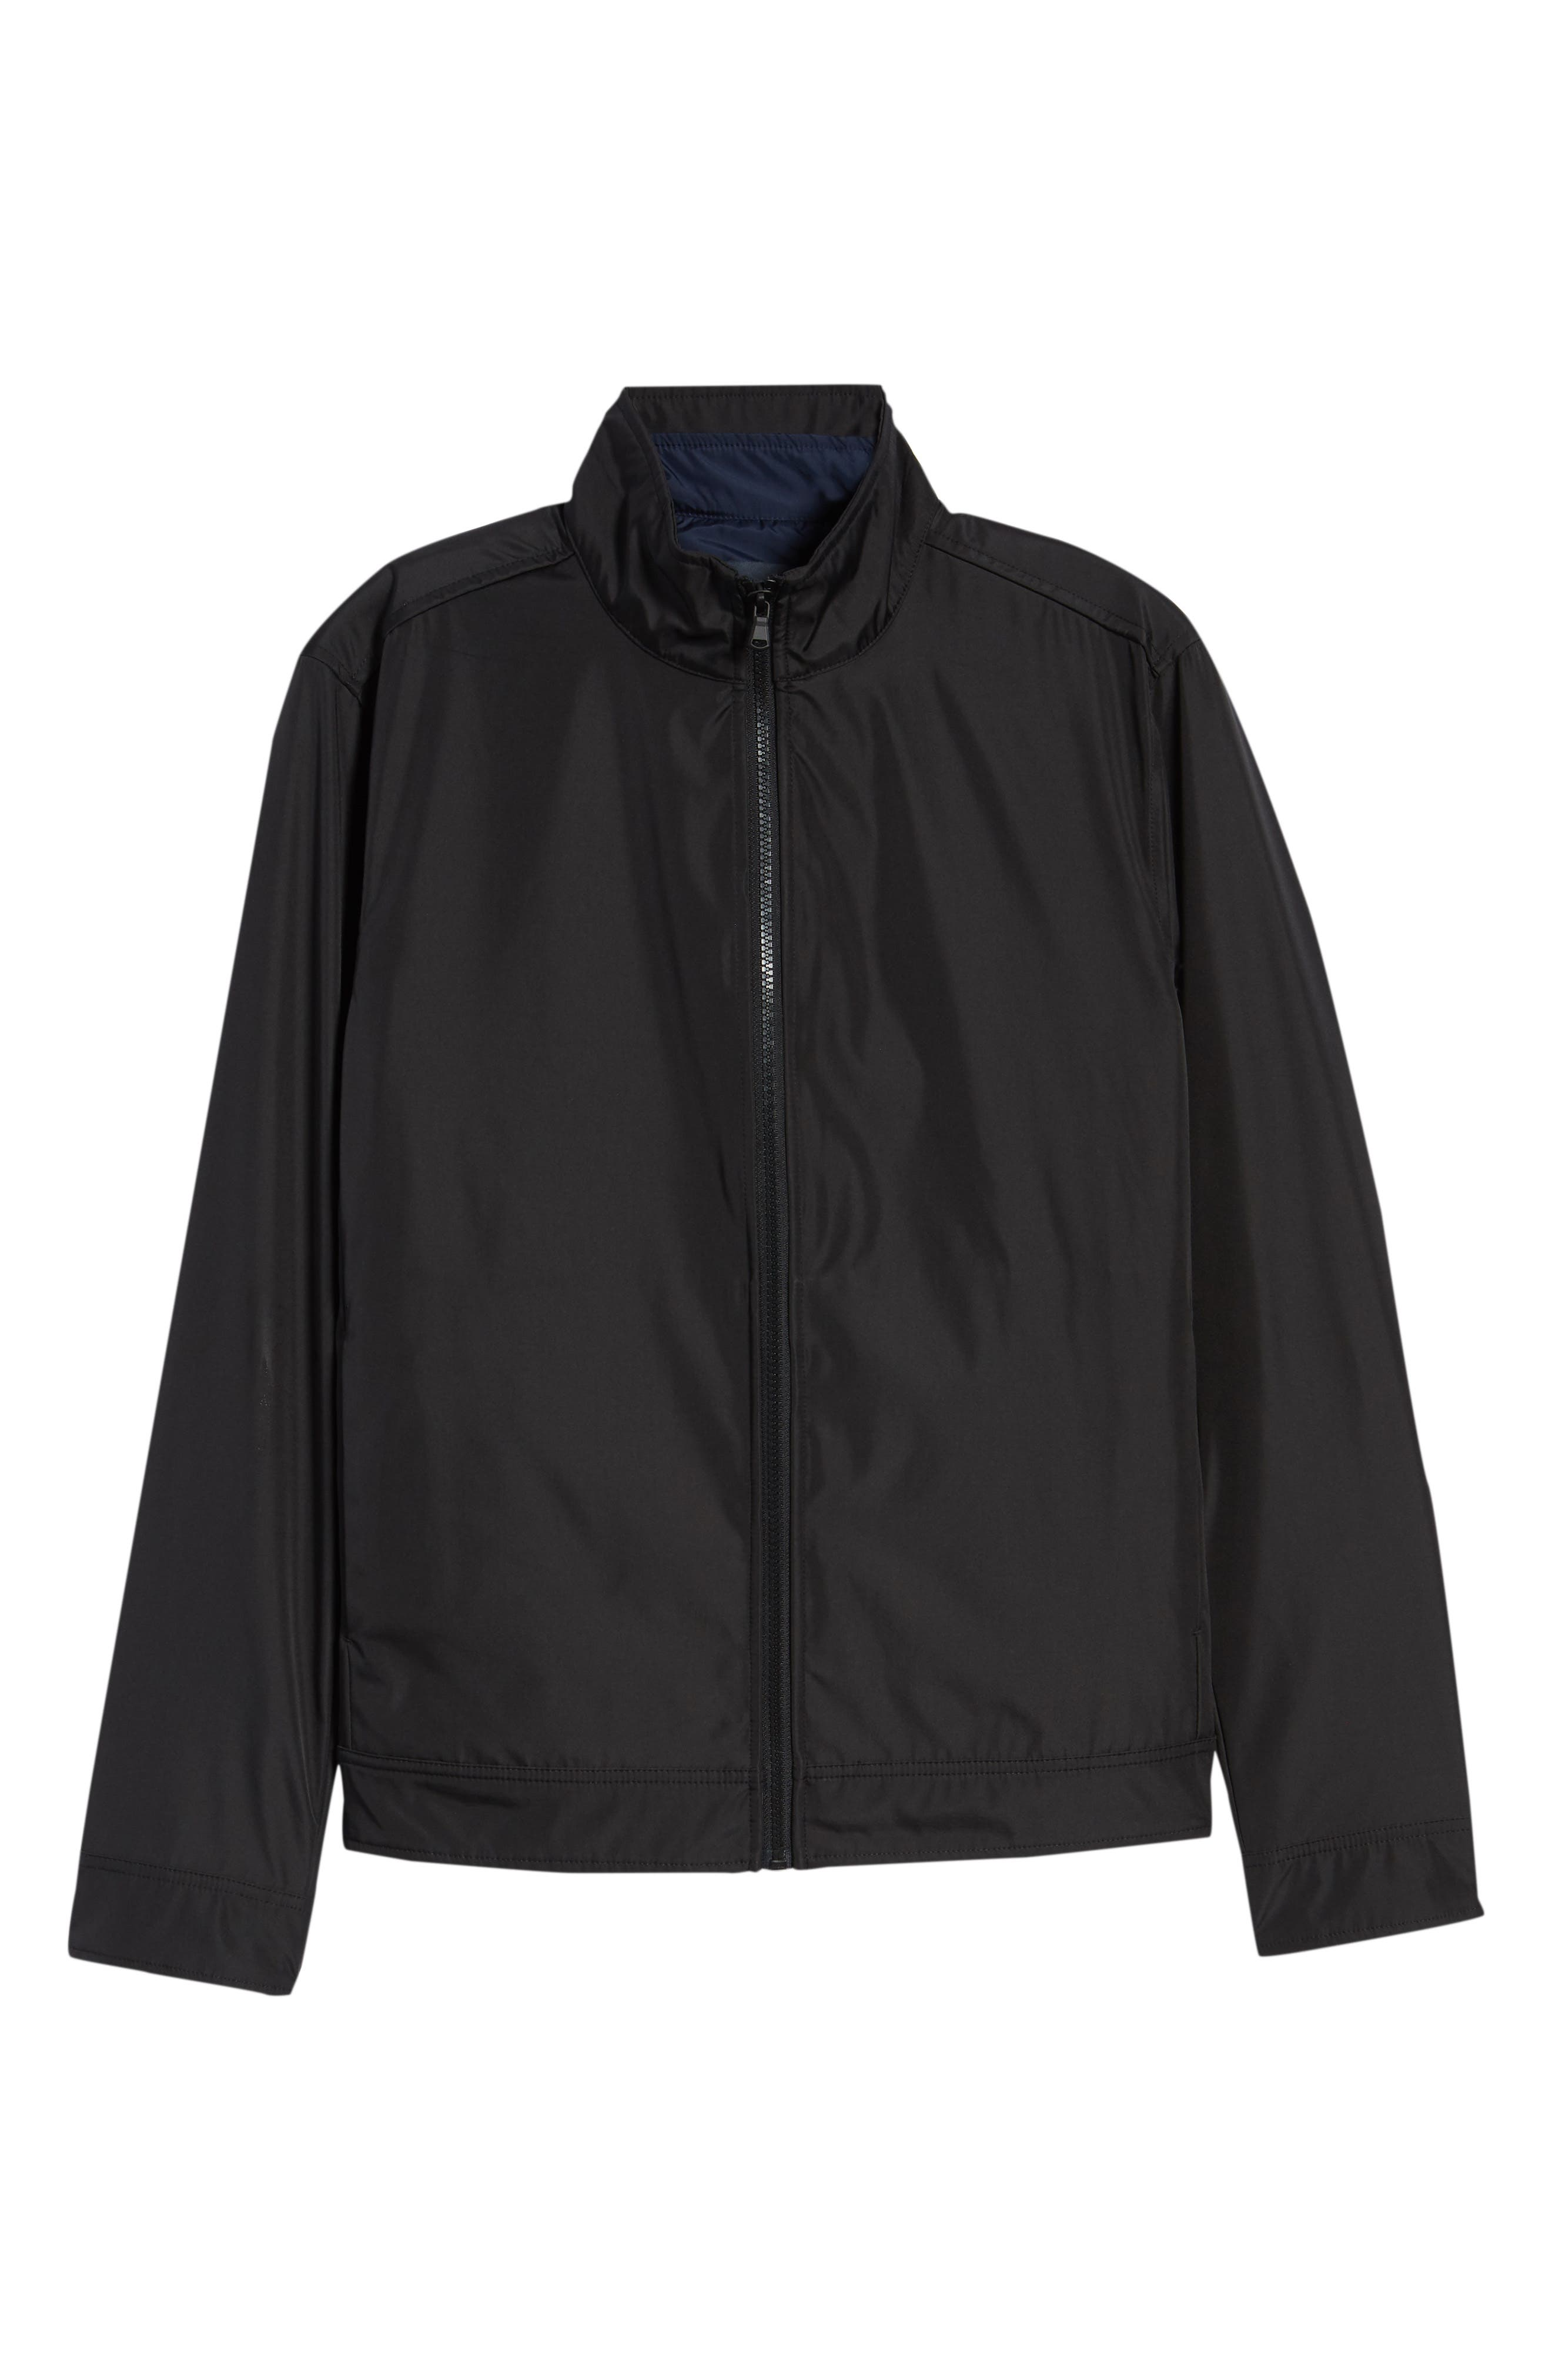 Oxford 2-in-1 Jacket,                             Alternate thumbnail 6, color,                             BLACK